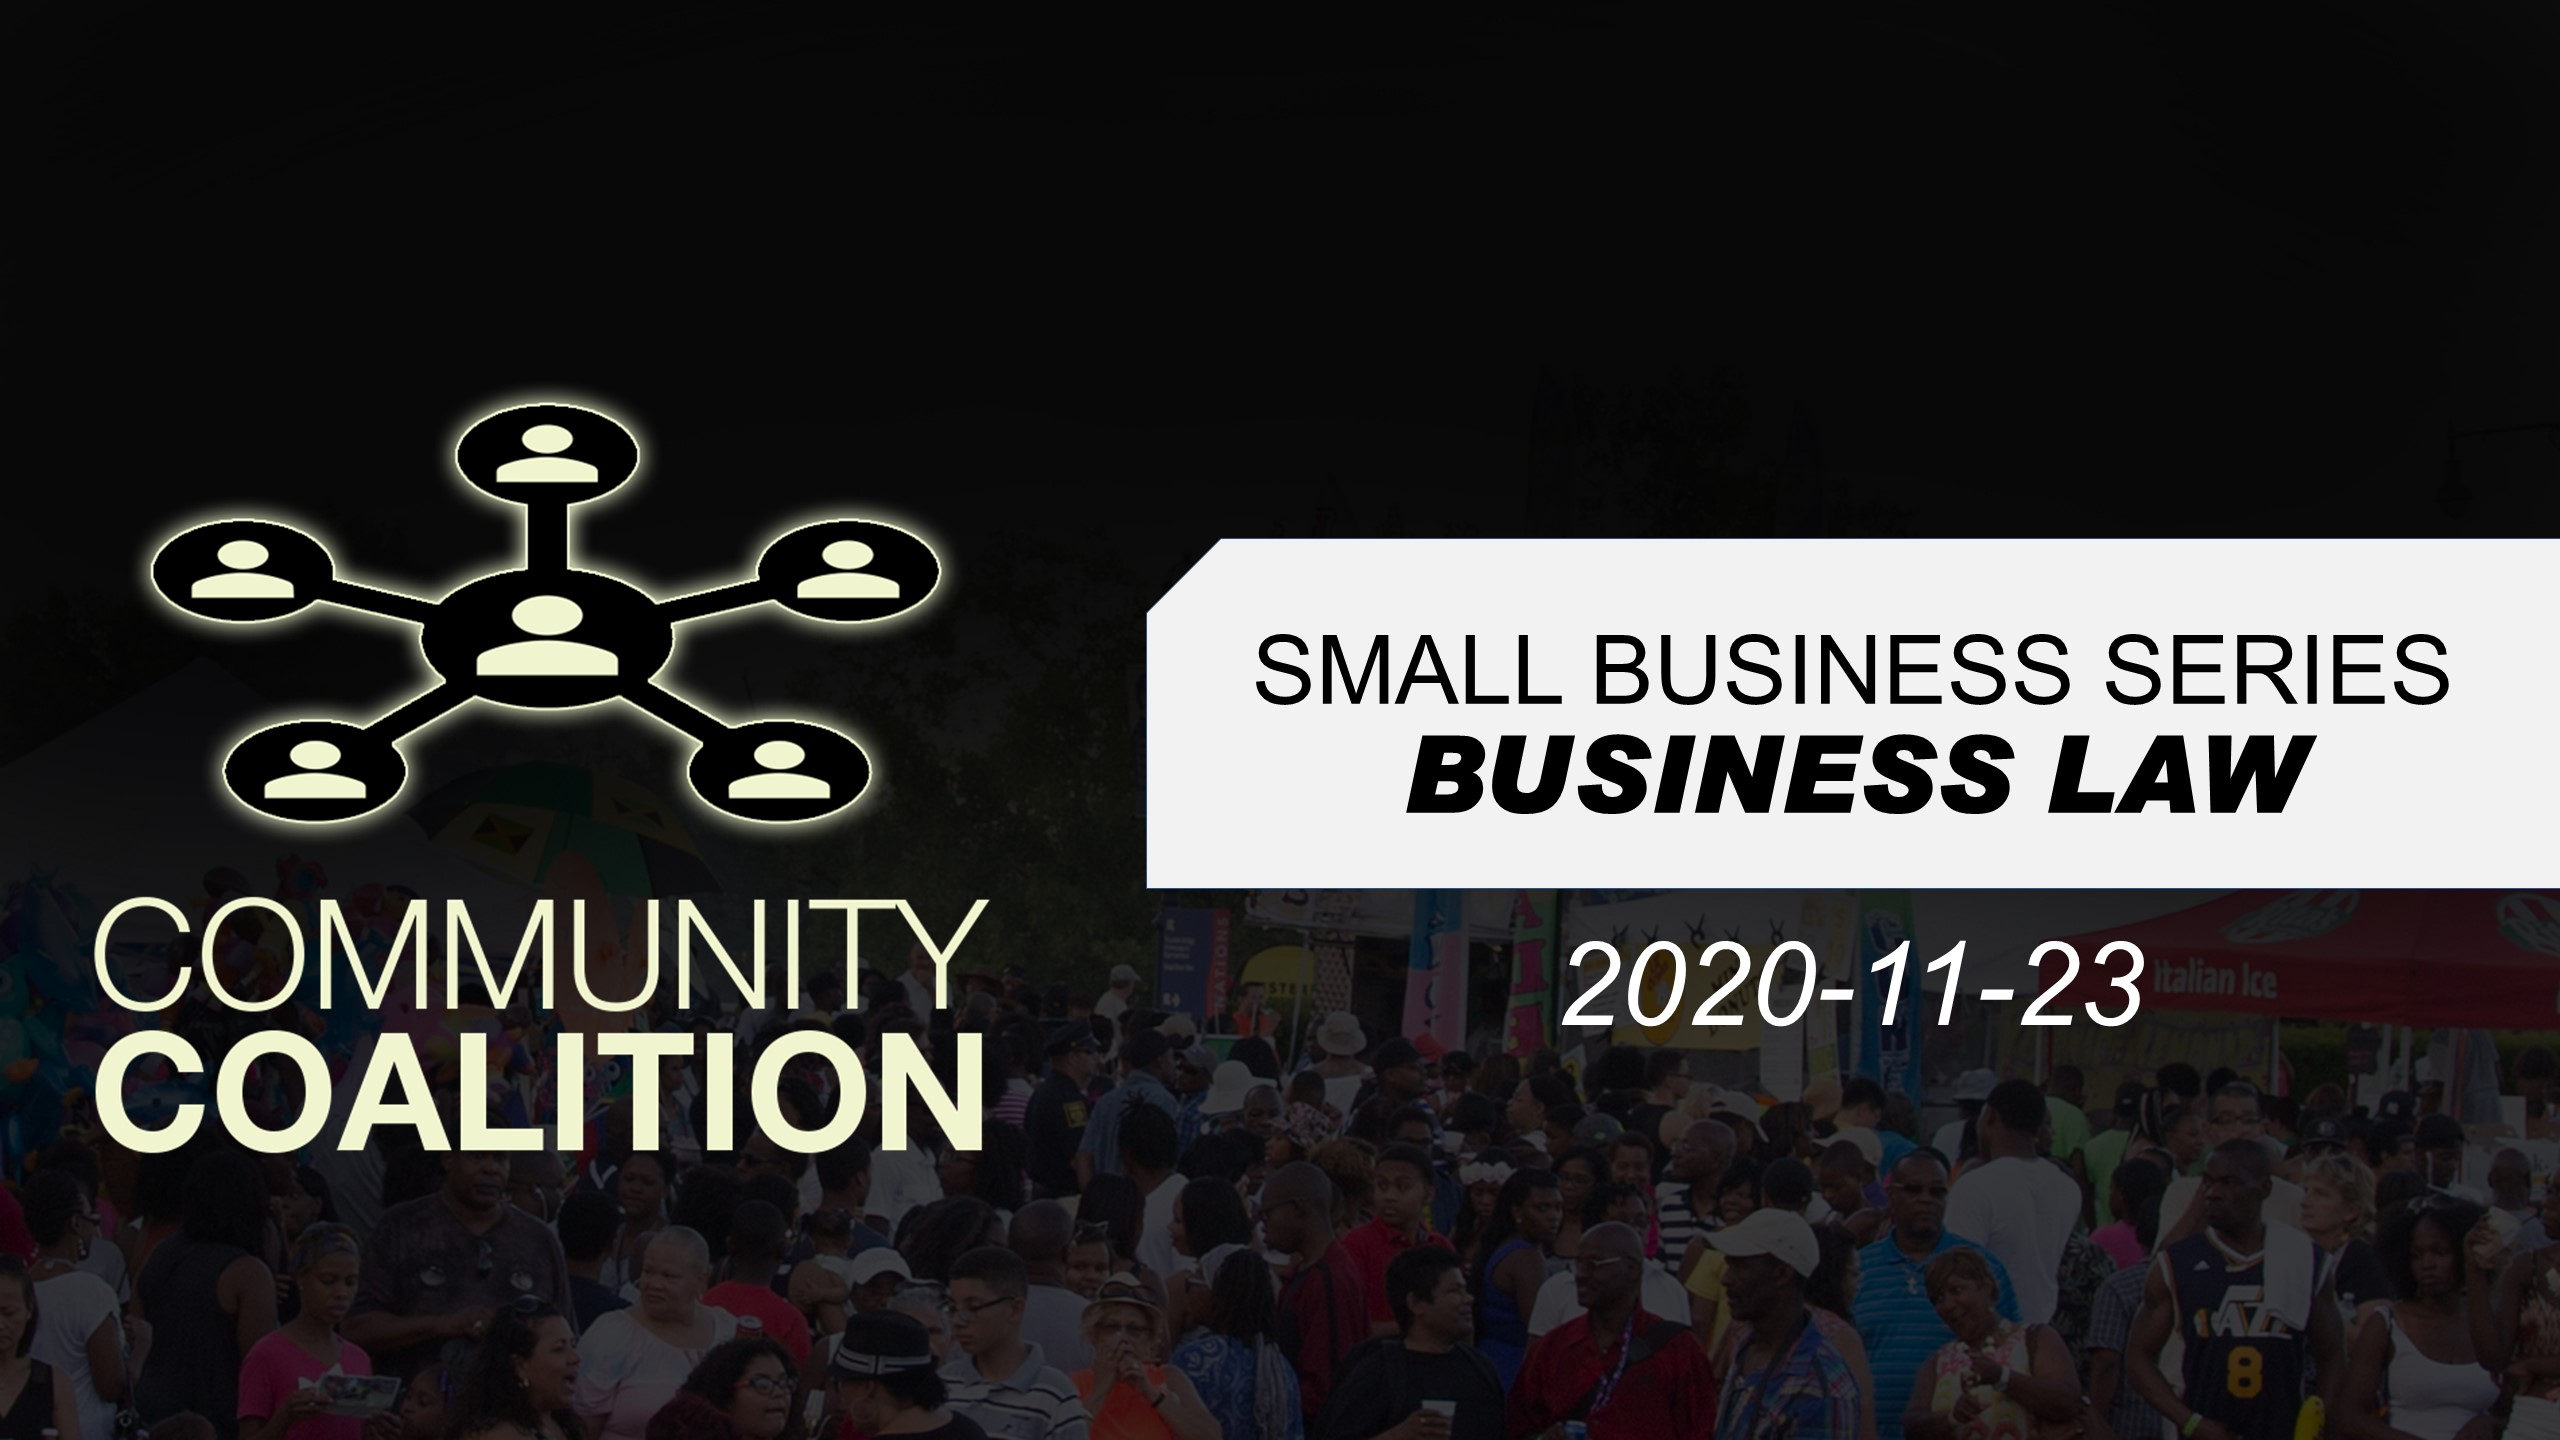 BUSINESS LAW – Small Business Virtual Video Series